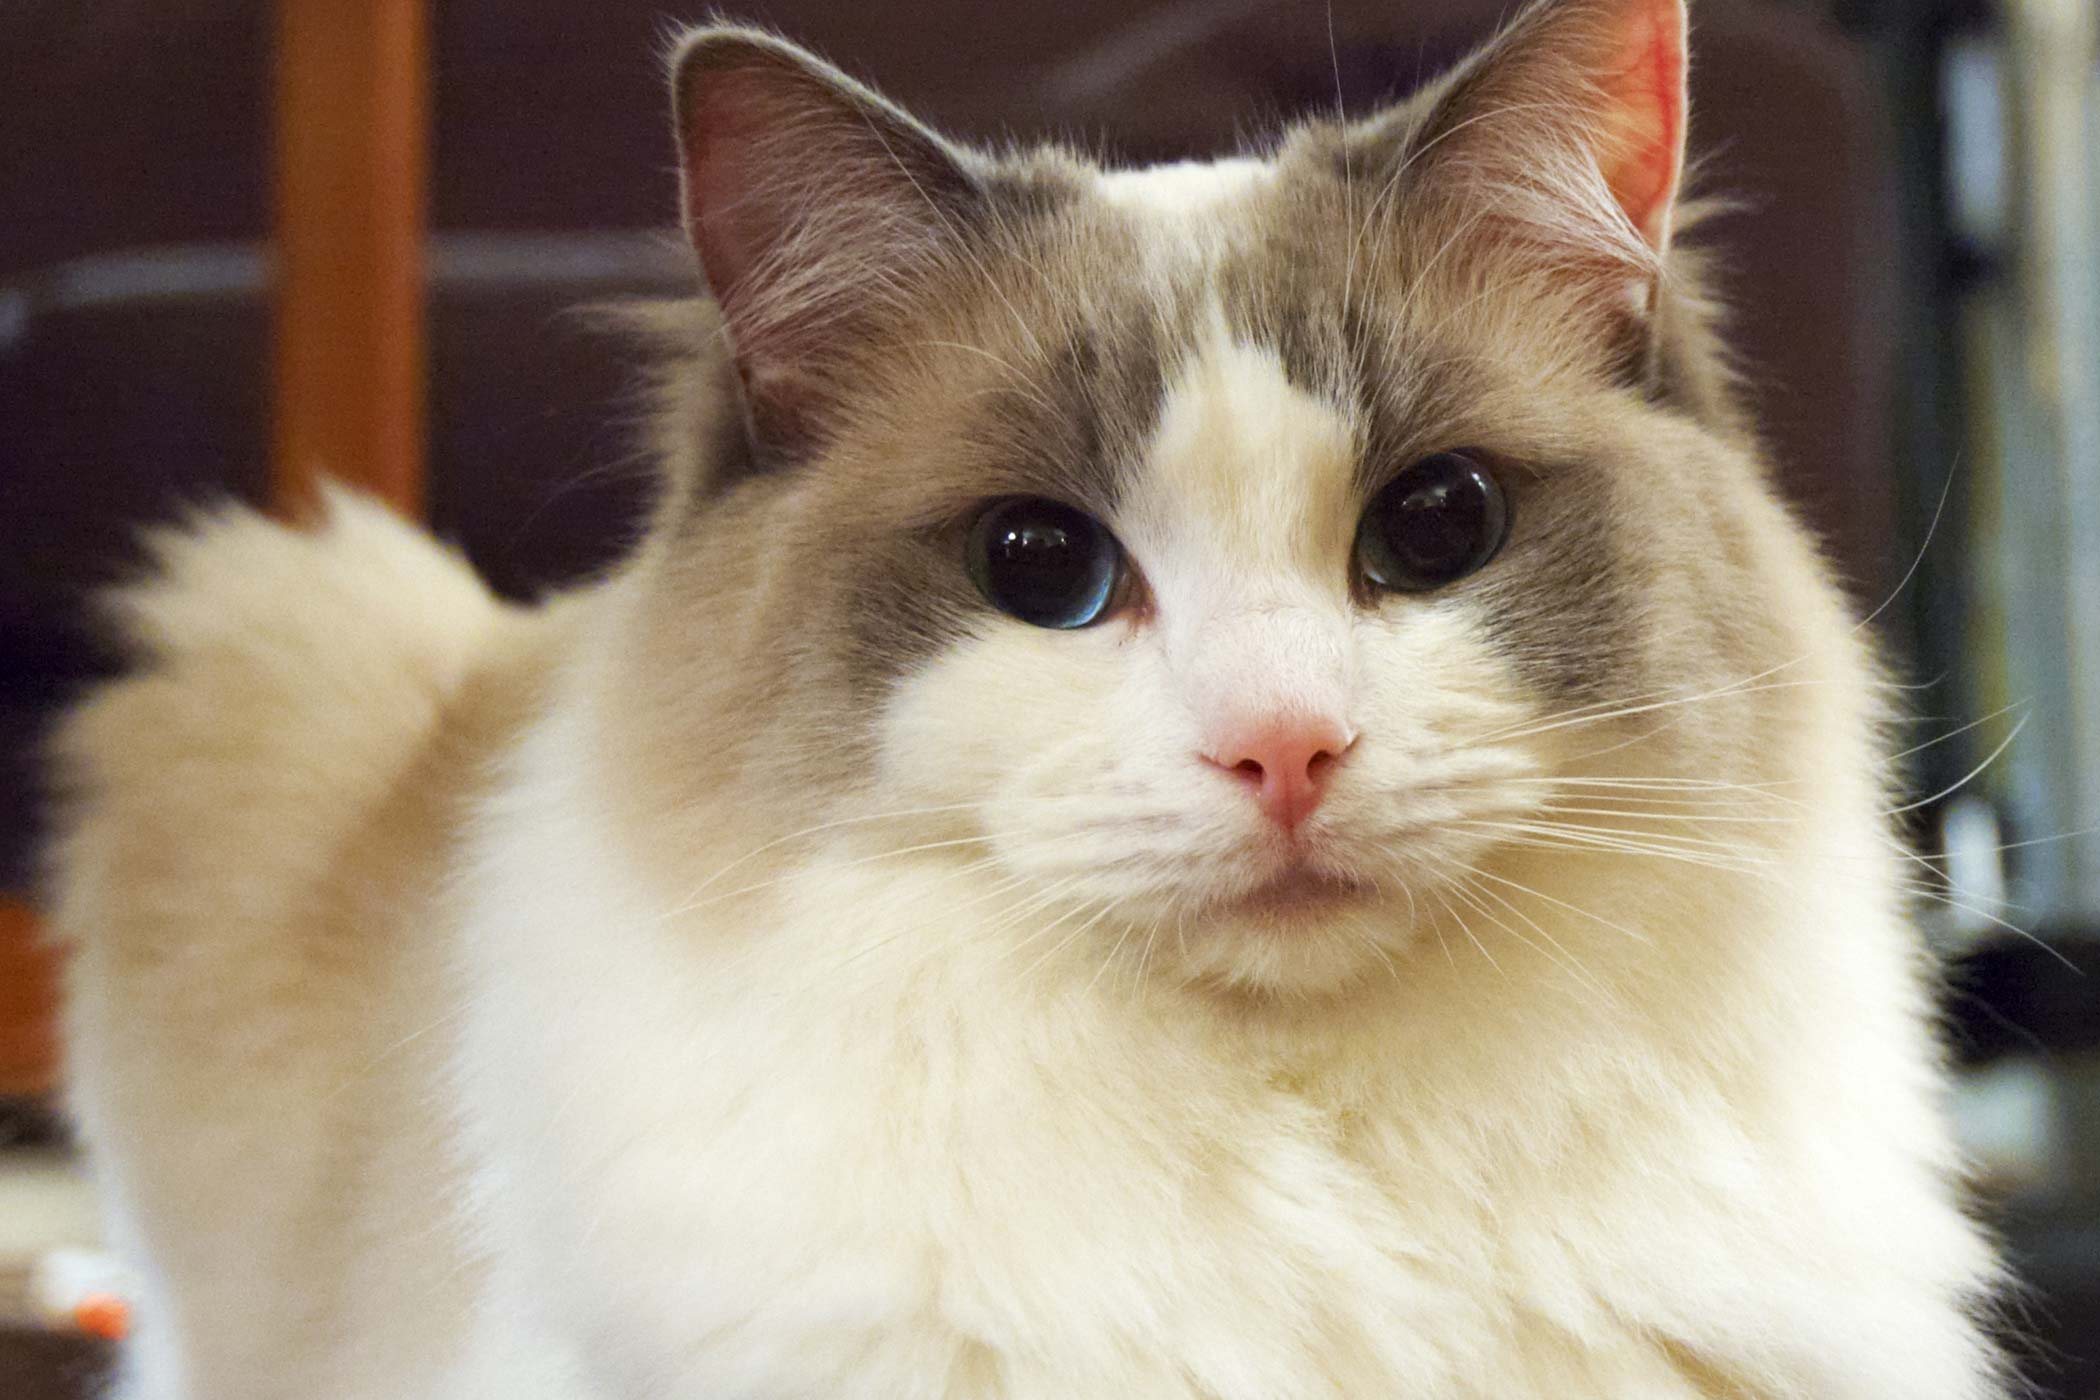 Gallbladder inflammation in cats symptoms